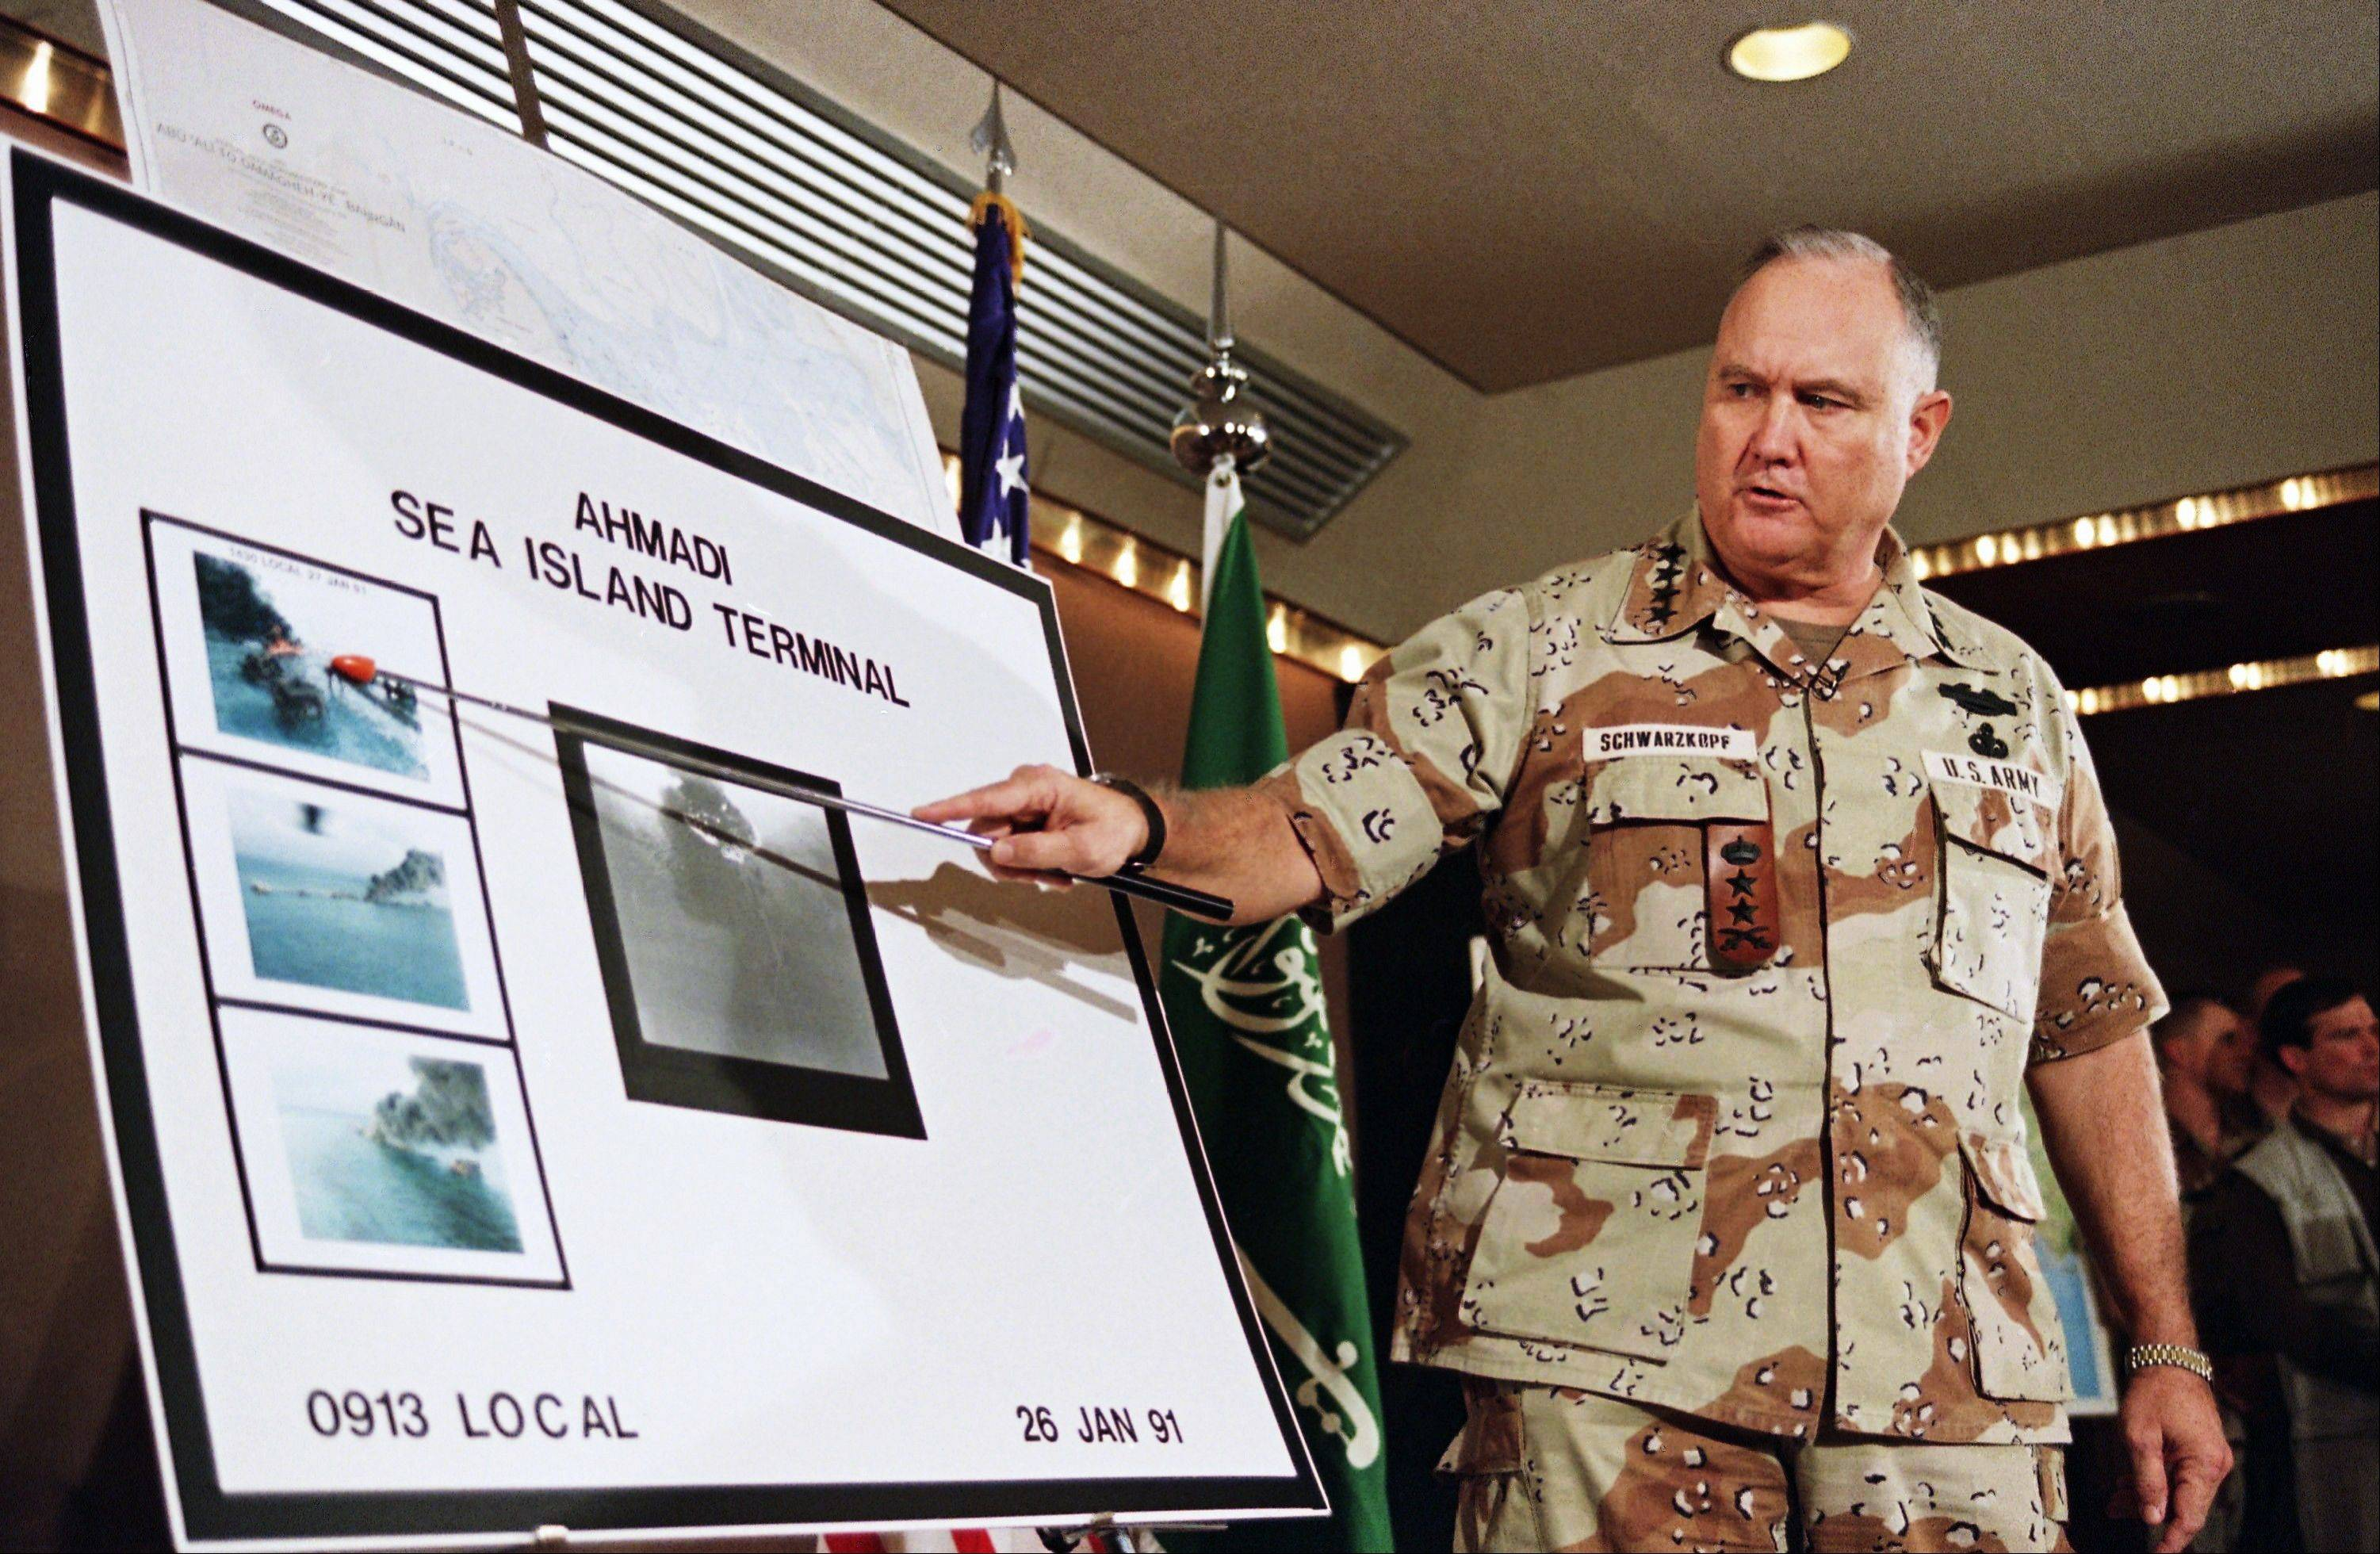 U.S. Army Gen. Norman Schwarzkopf points to row of photos of Kuwait's Ahmadi Sea Island Terminal on fire after a U.S. attack on the facility.